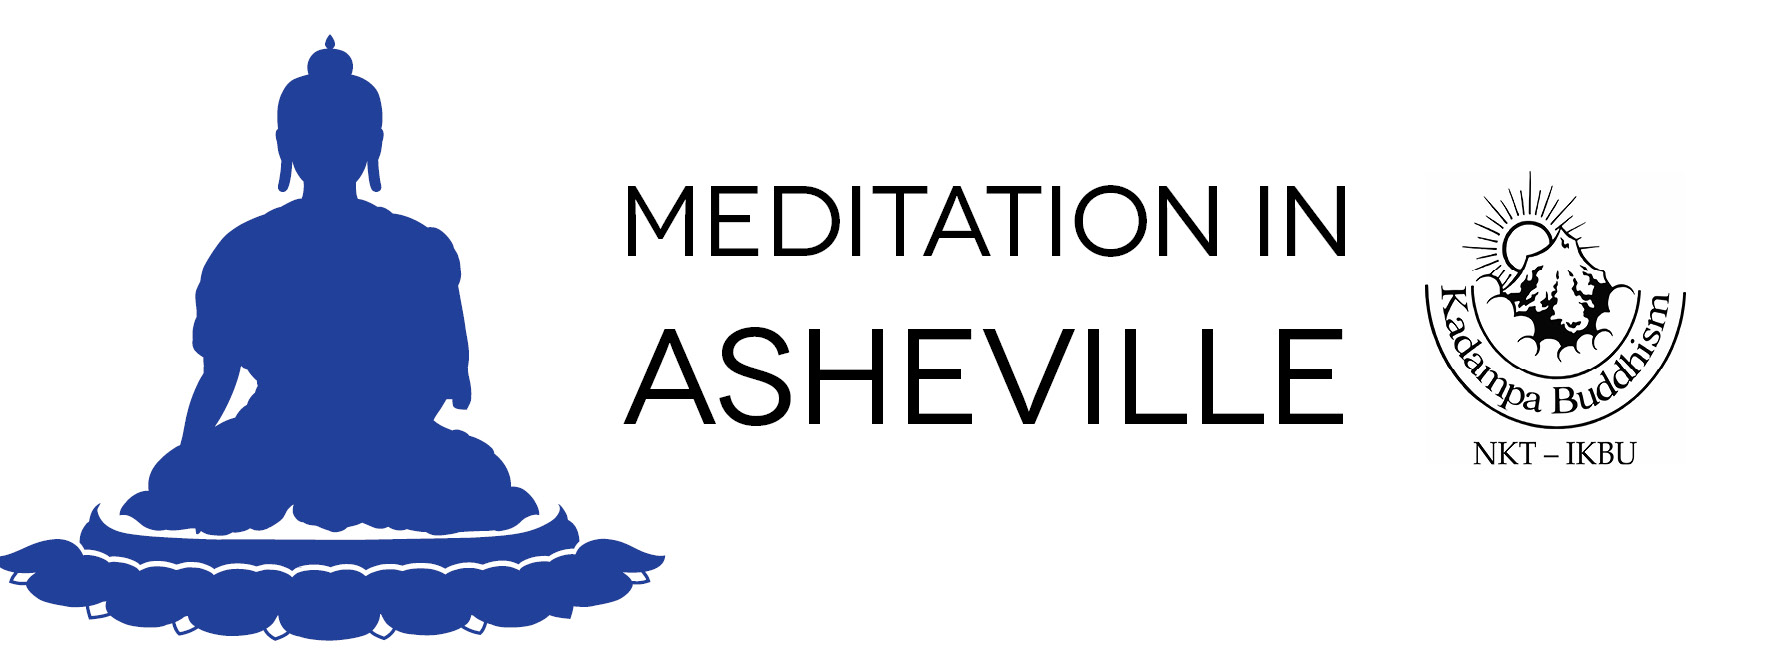 Meditation in Asheville